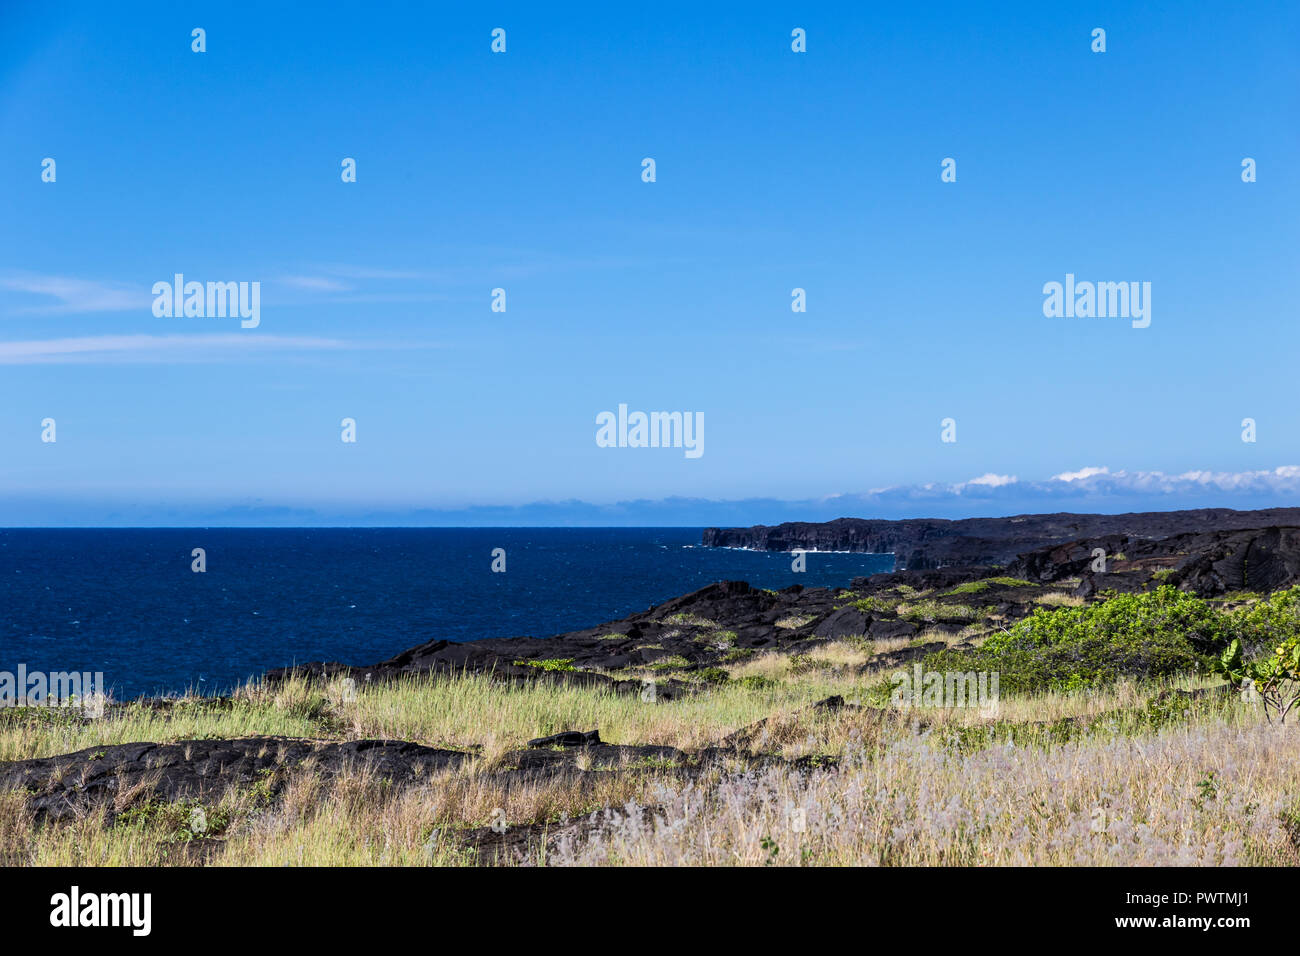 View of Hawaii's Big Island coastline in Volcano National Park. Plants and black volcanic rock in foreground; blue sky & ocean in background. Stock Photo